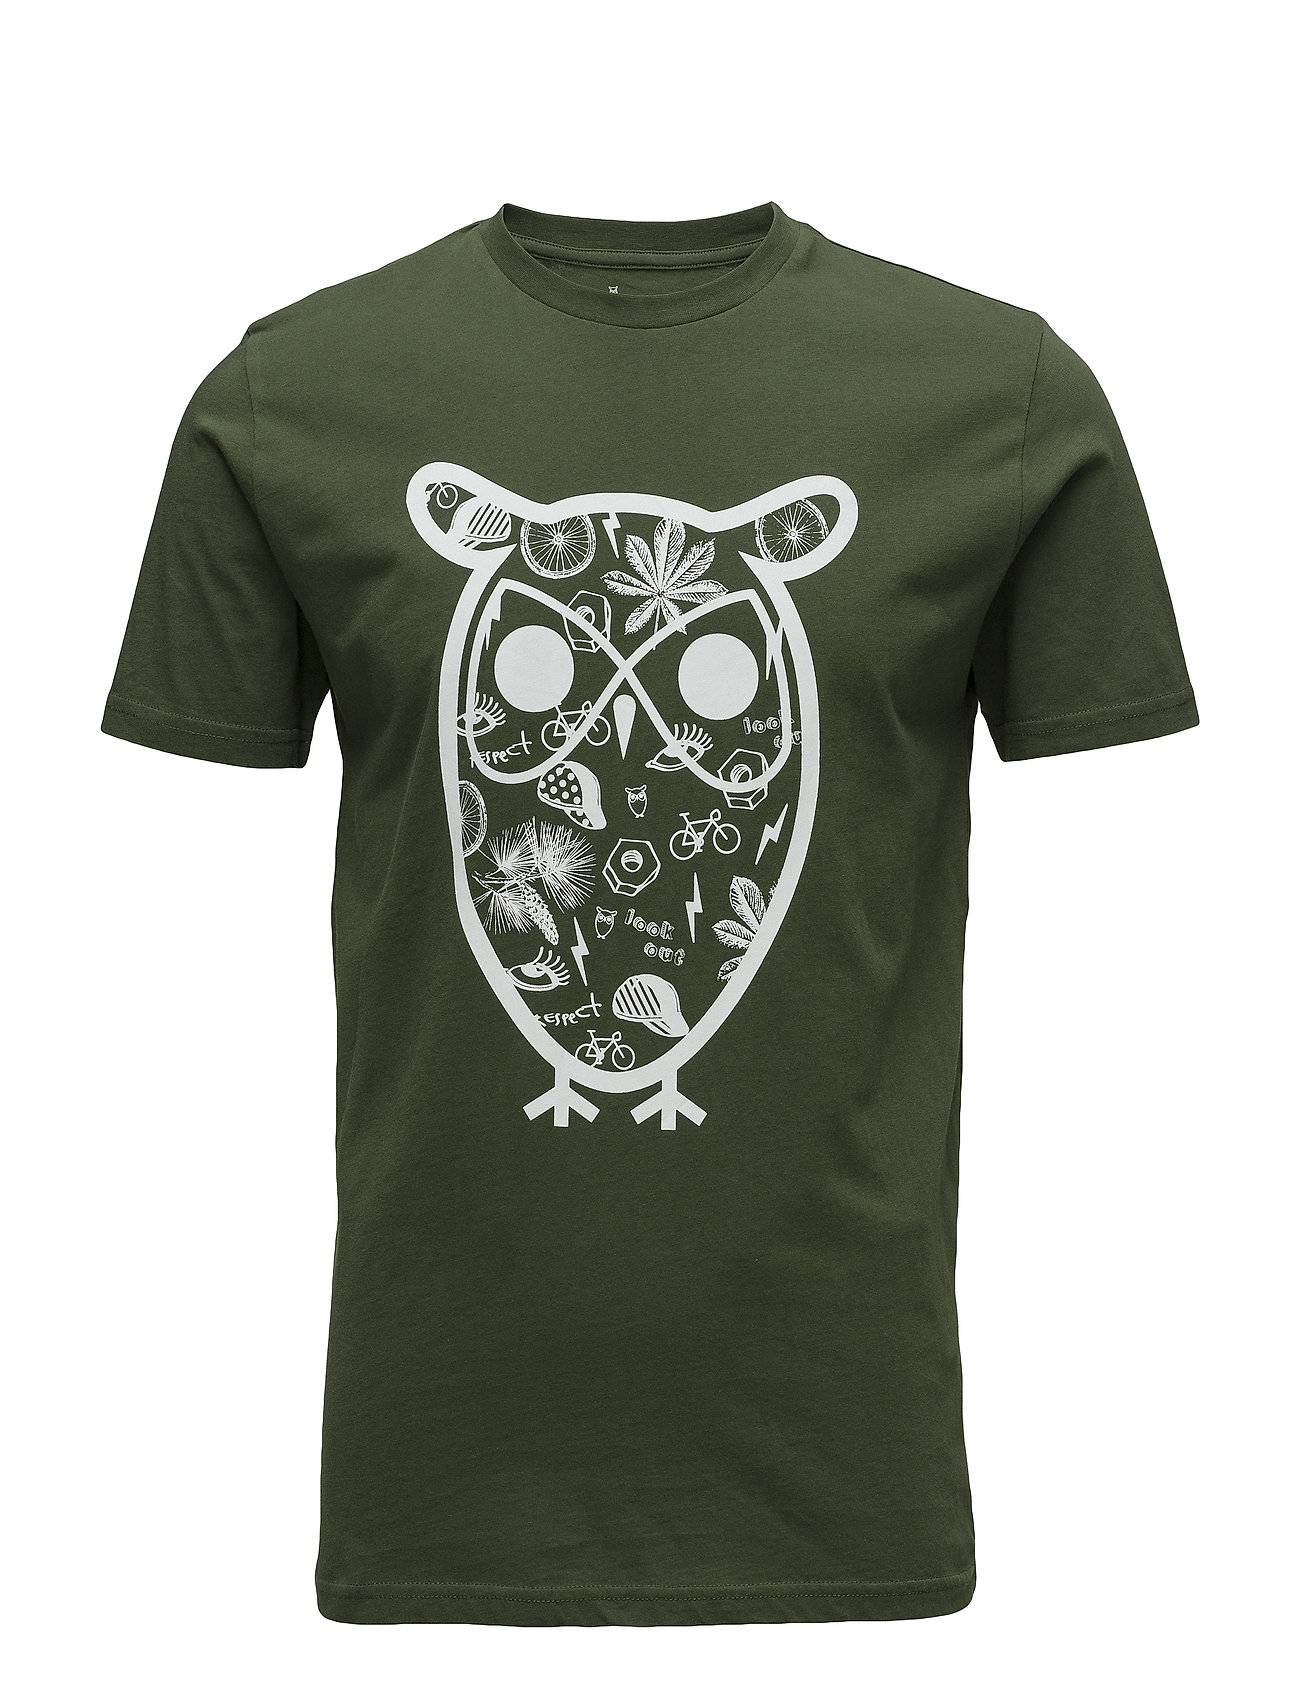 Knowledge Cotton Apparel T-Shirt With Big Owl Concept Print